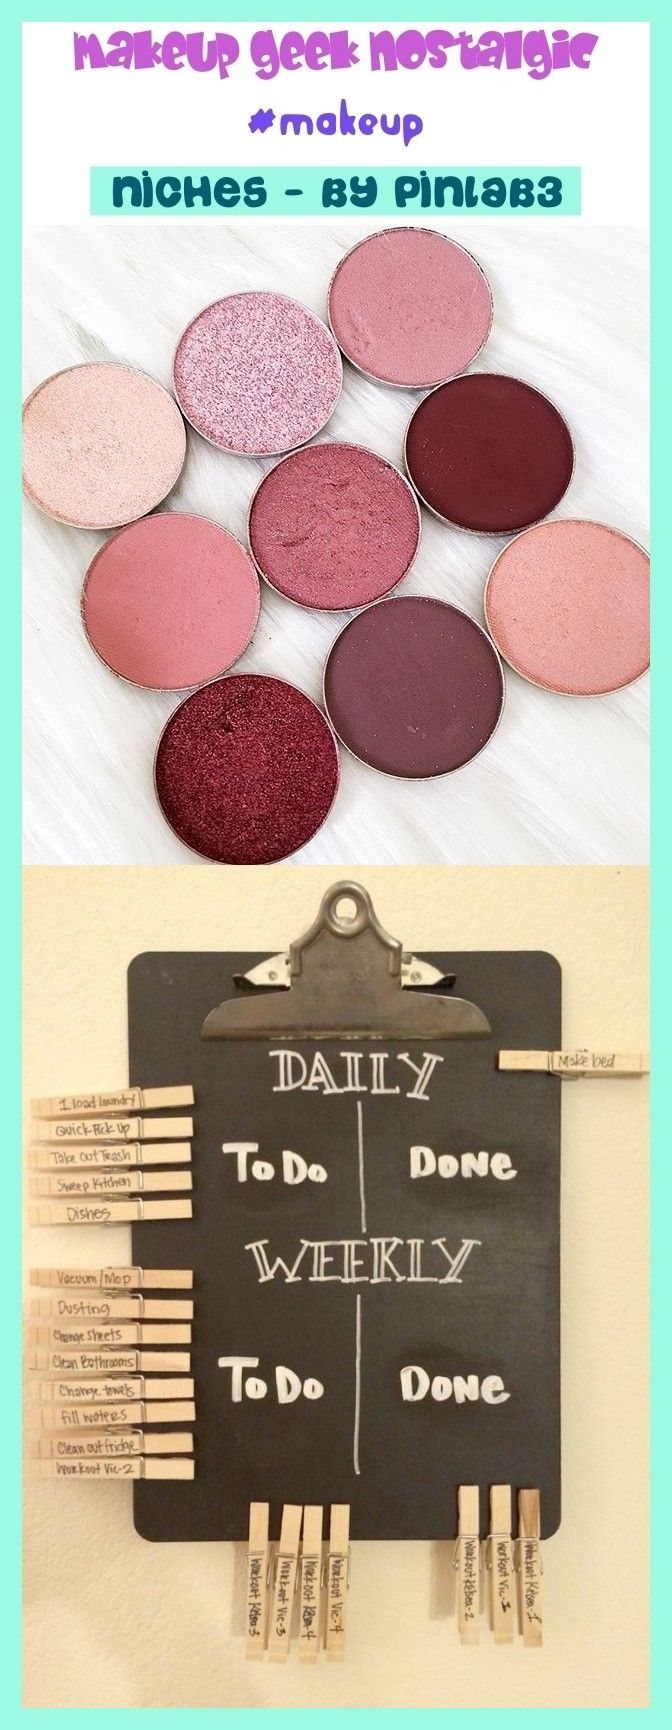 Makeup geek nostalgic makeup beauty. makeup geek